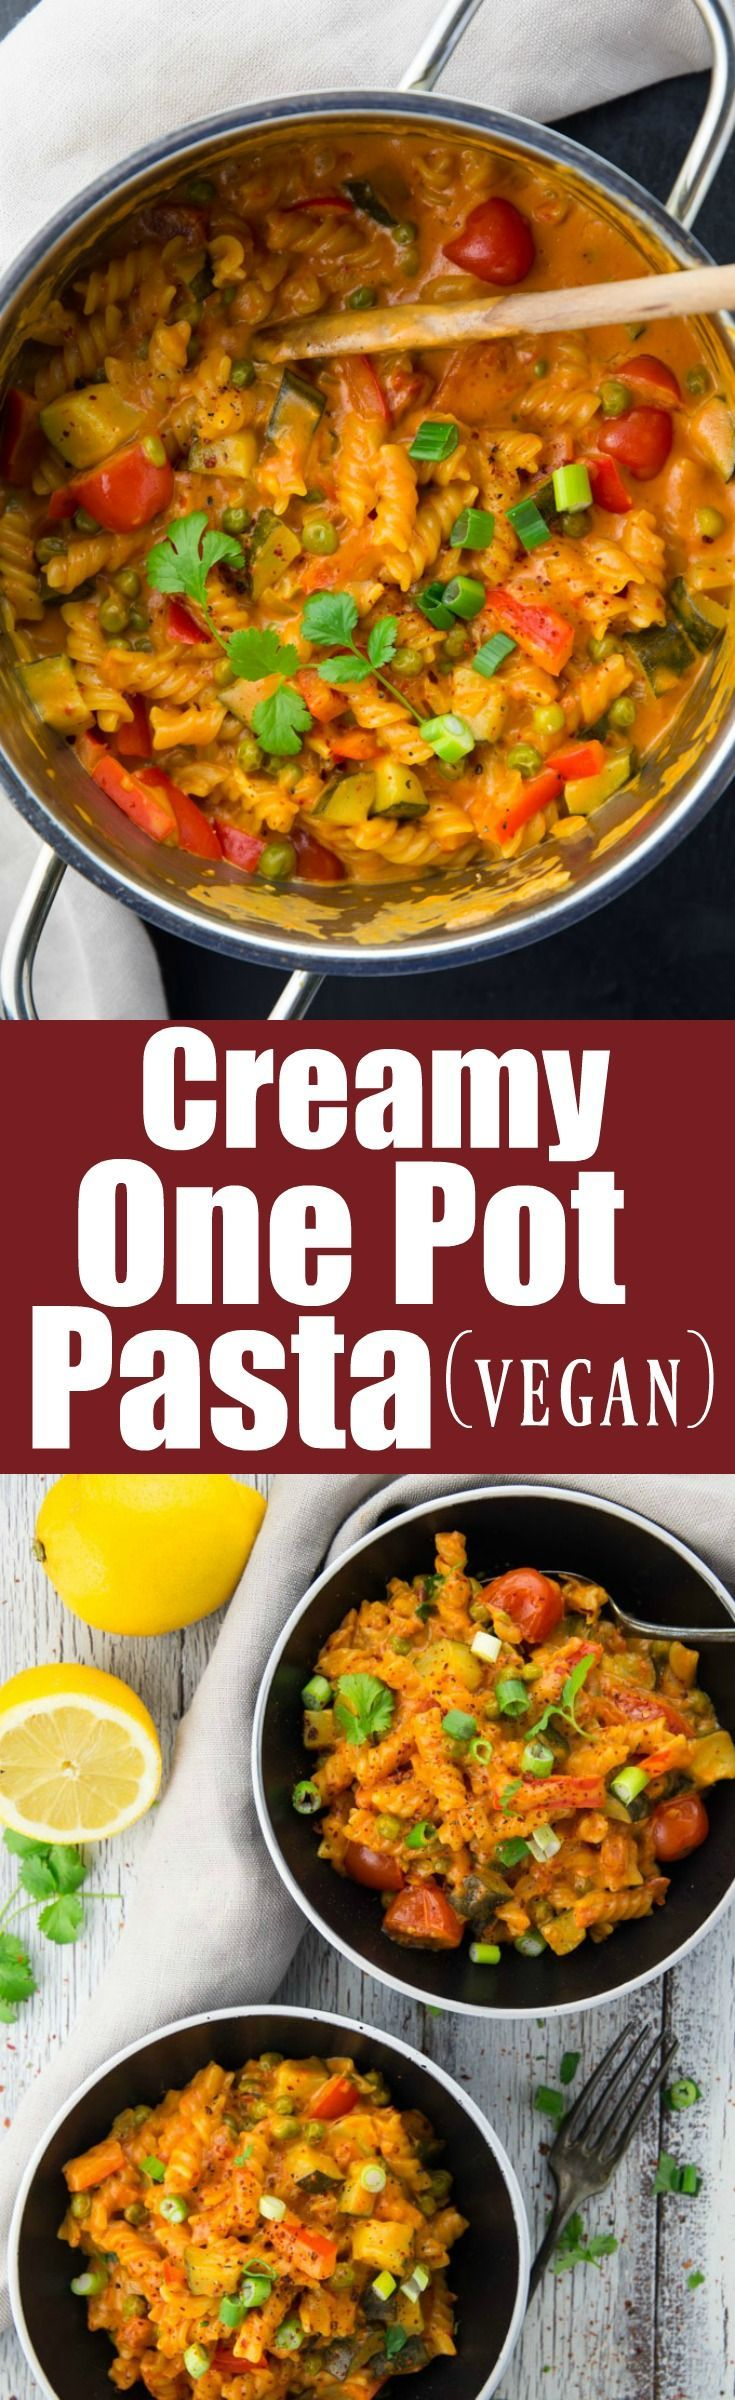 This Asian style vegan one pot pasta is the perfect meal for busy weeknights! It's super creamy, delicious, healthy, and insanely easy to make!